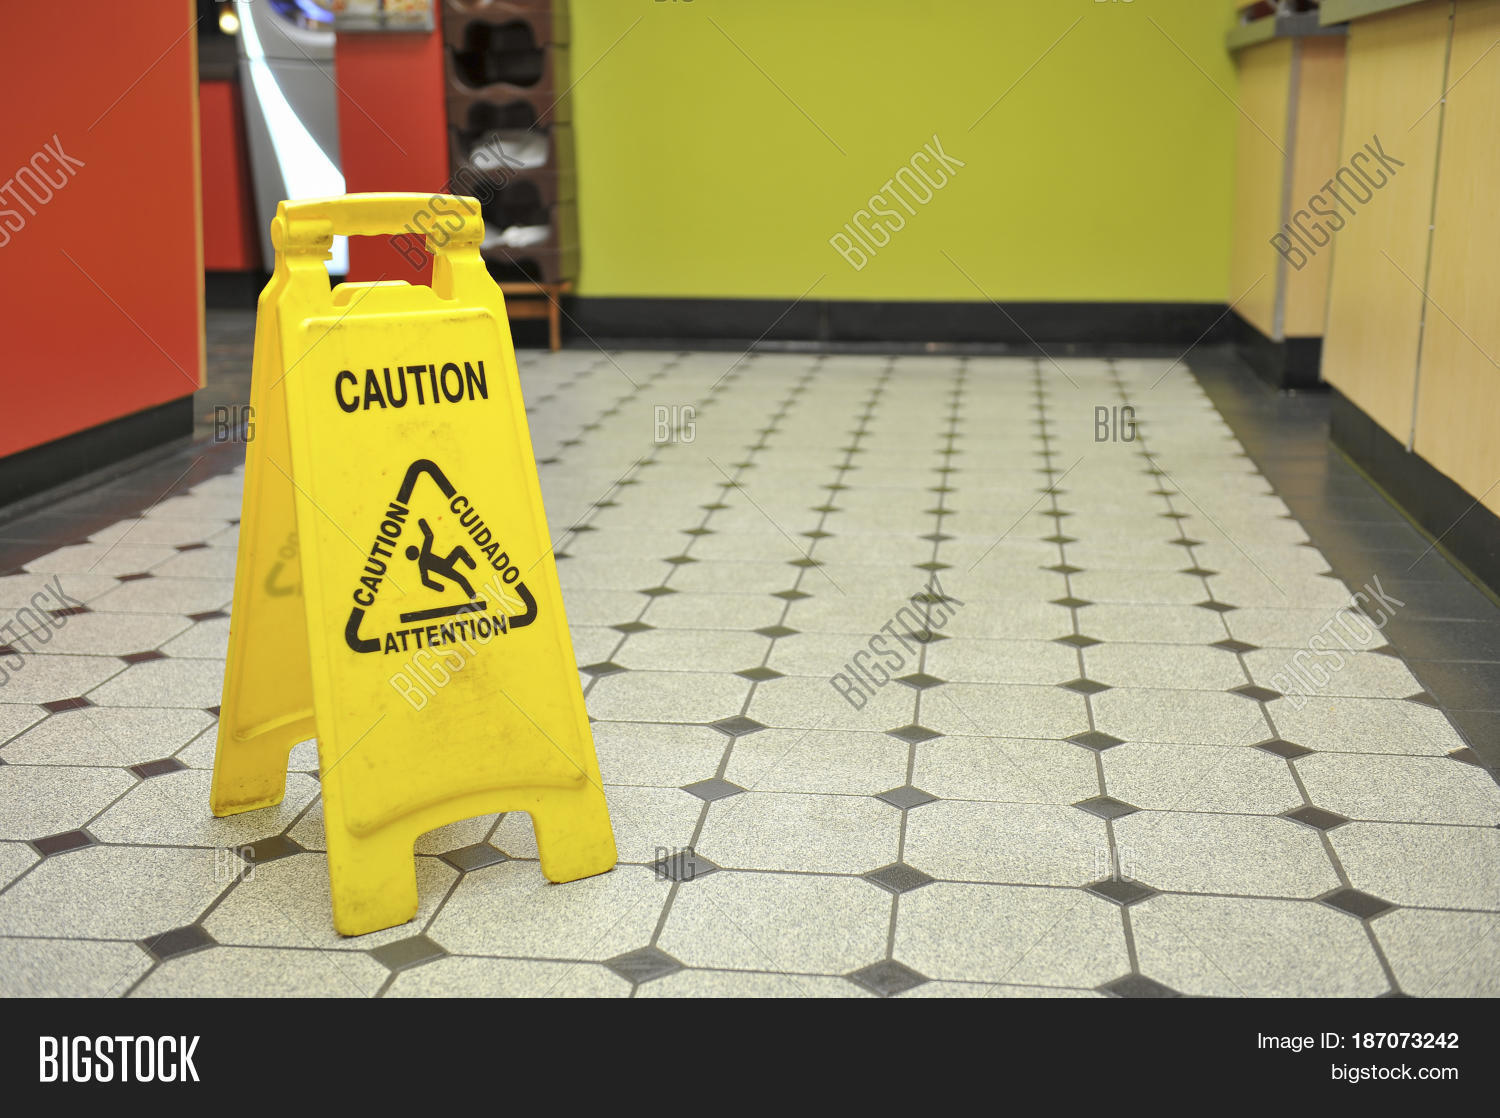 image et photo de restaurant wet floor sign bigstock. Black Bedroom Furniture Sets. Home Design Ideas